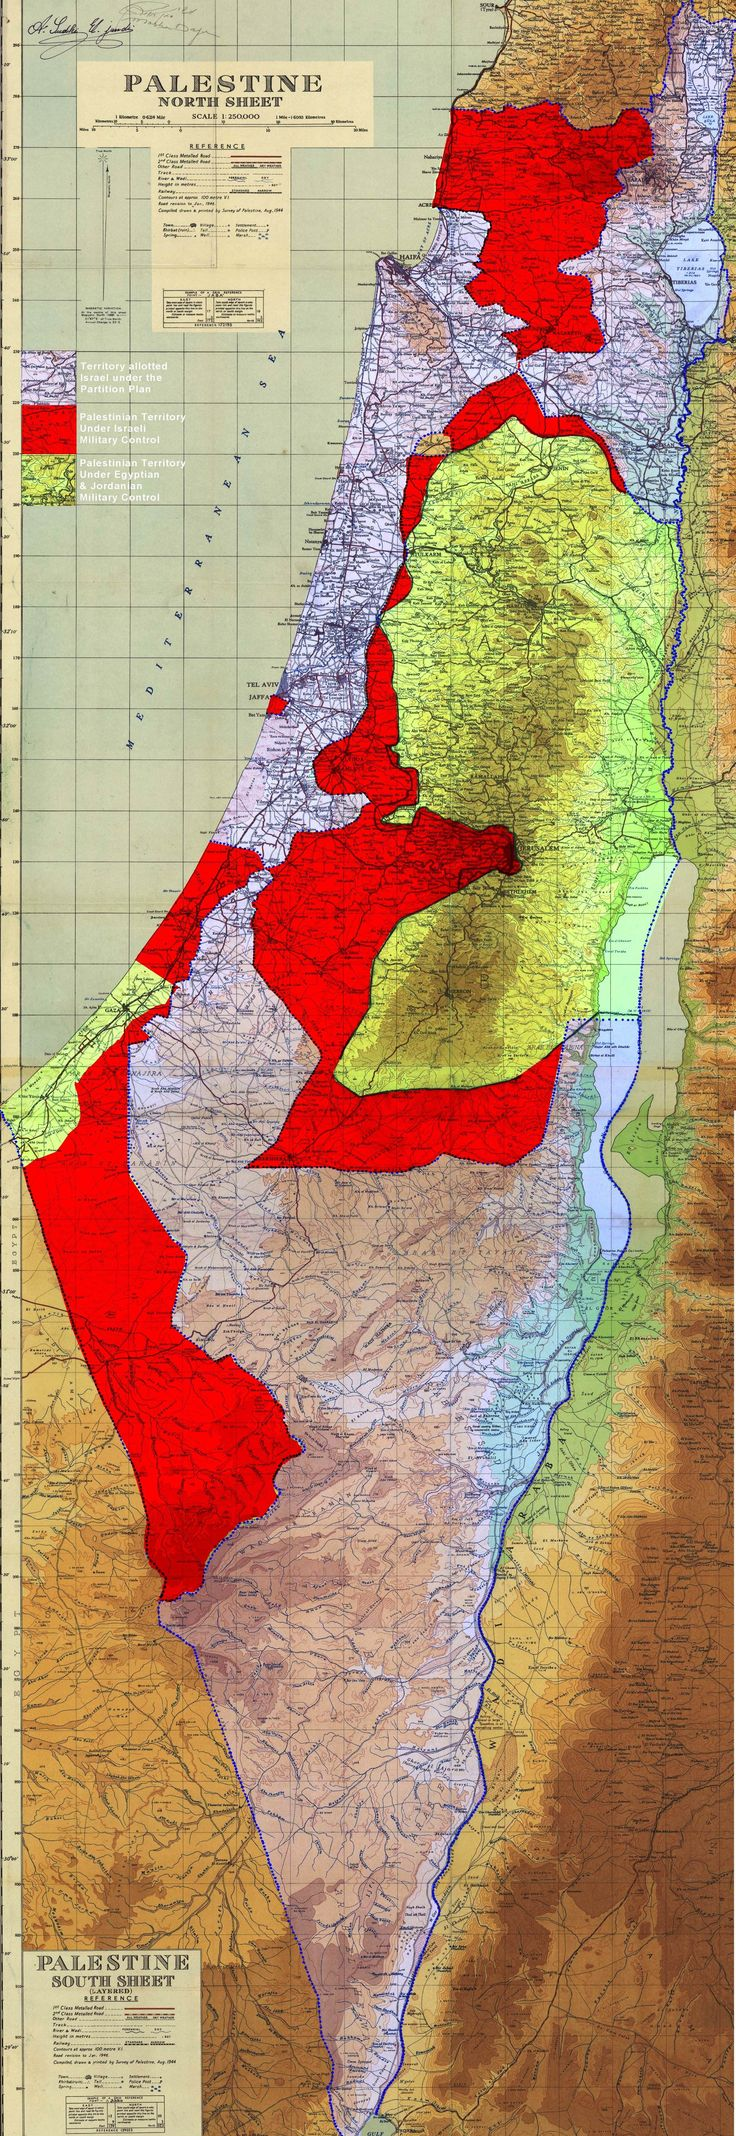 Palestinian territories under military control of Israel